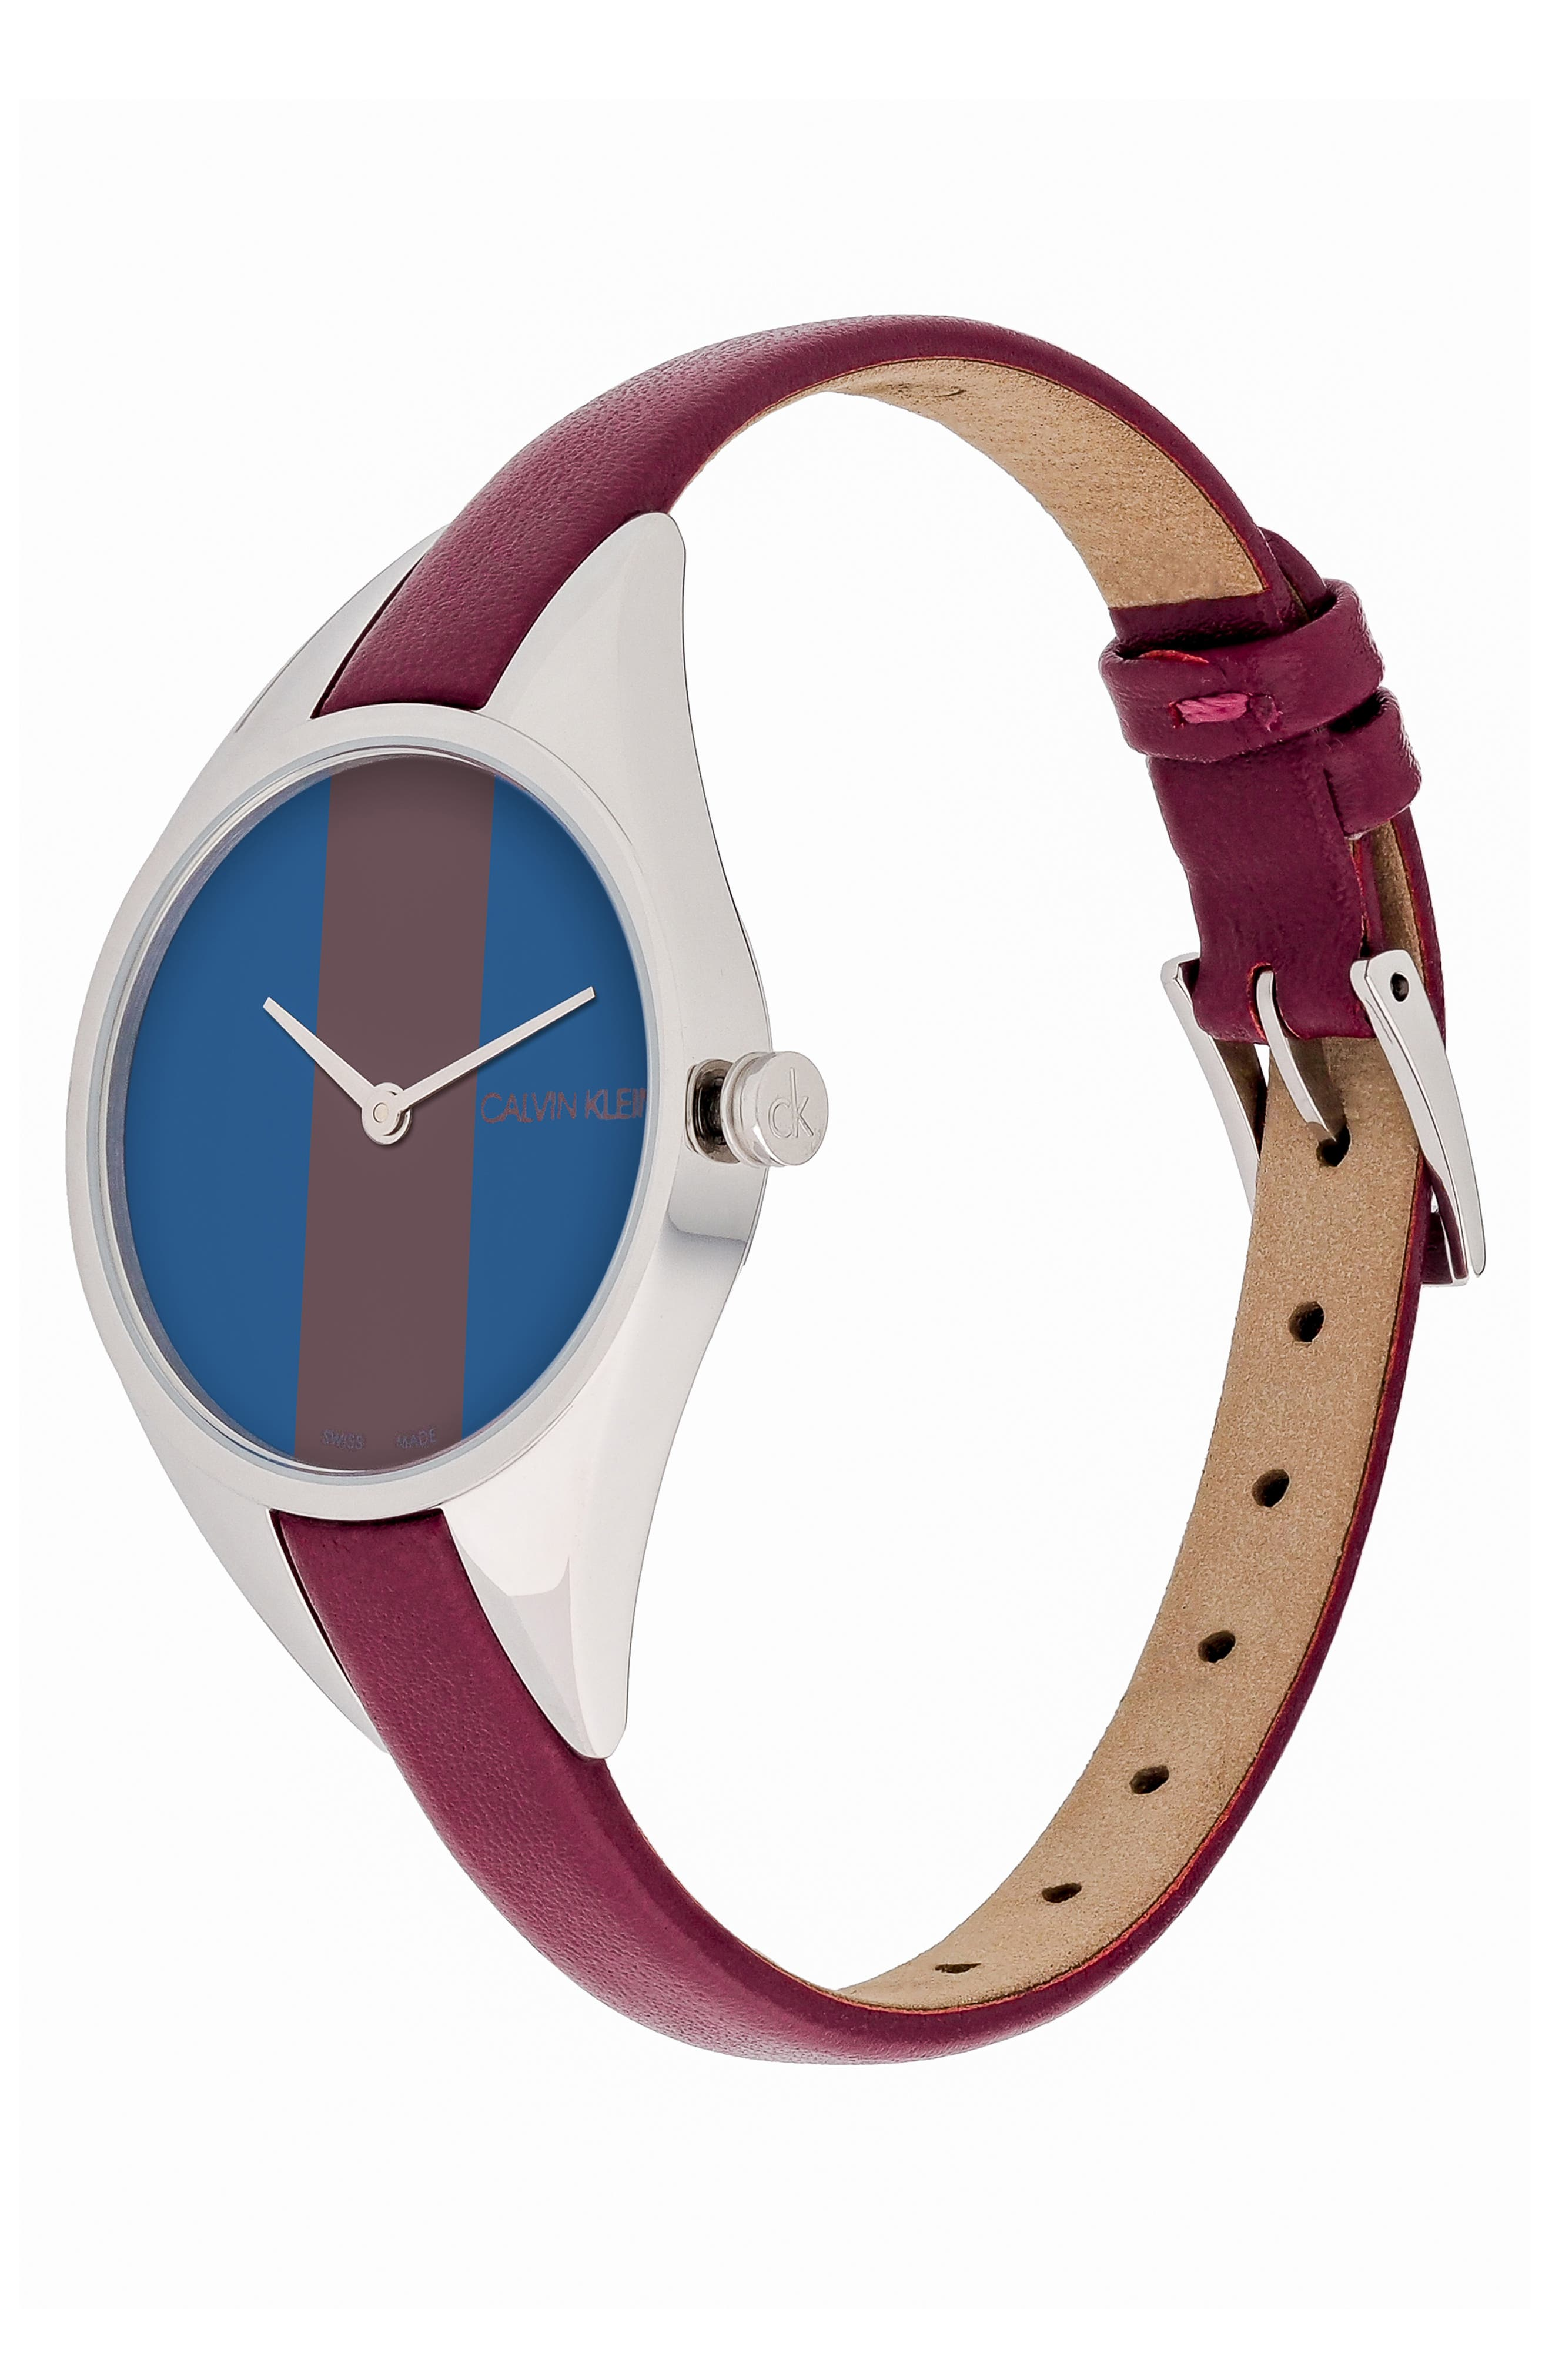 CALVIN KLEIN, Achieve Rebel Leather Band Watch, 29mm, Alternate thumbnail 4, color, RED/ BLUE/ SILVER